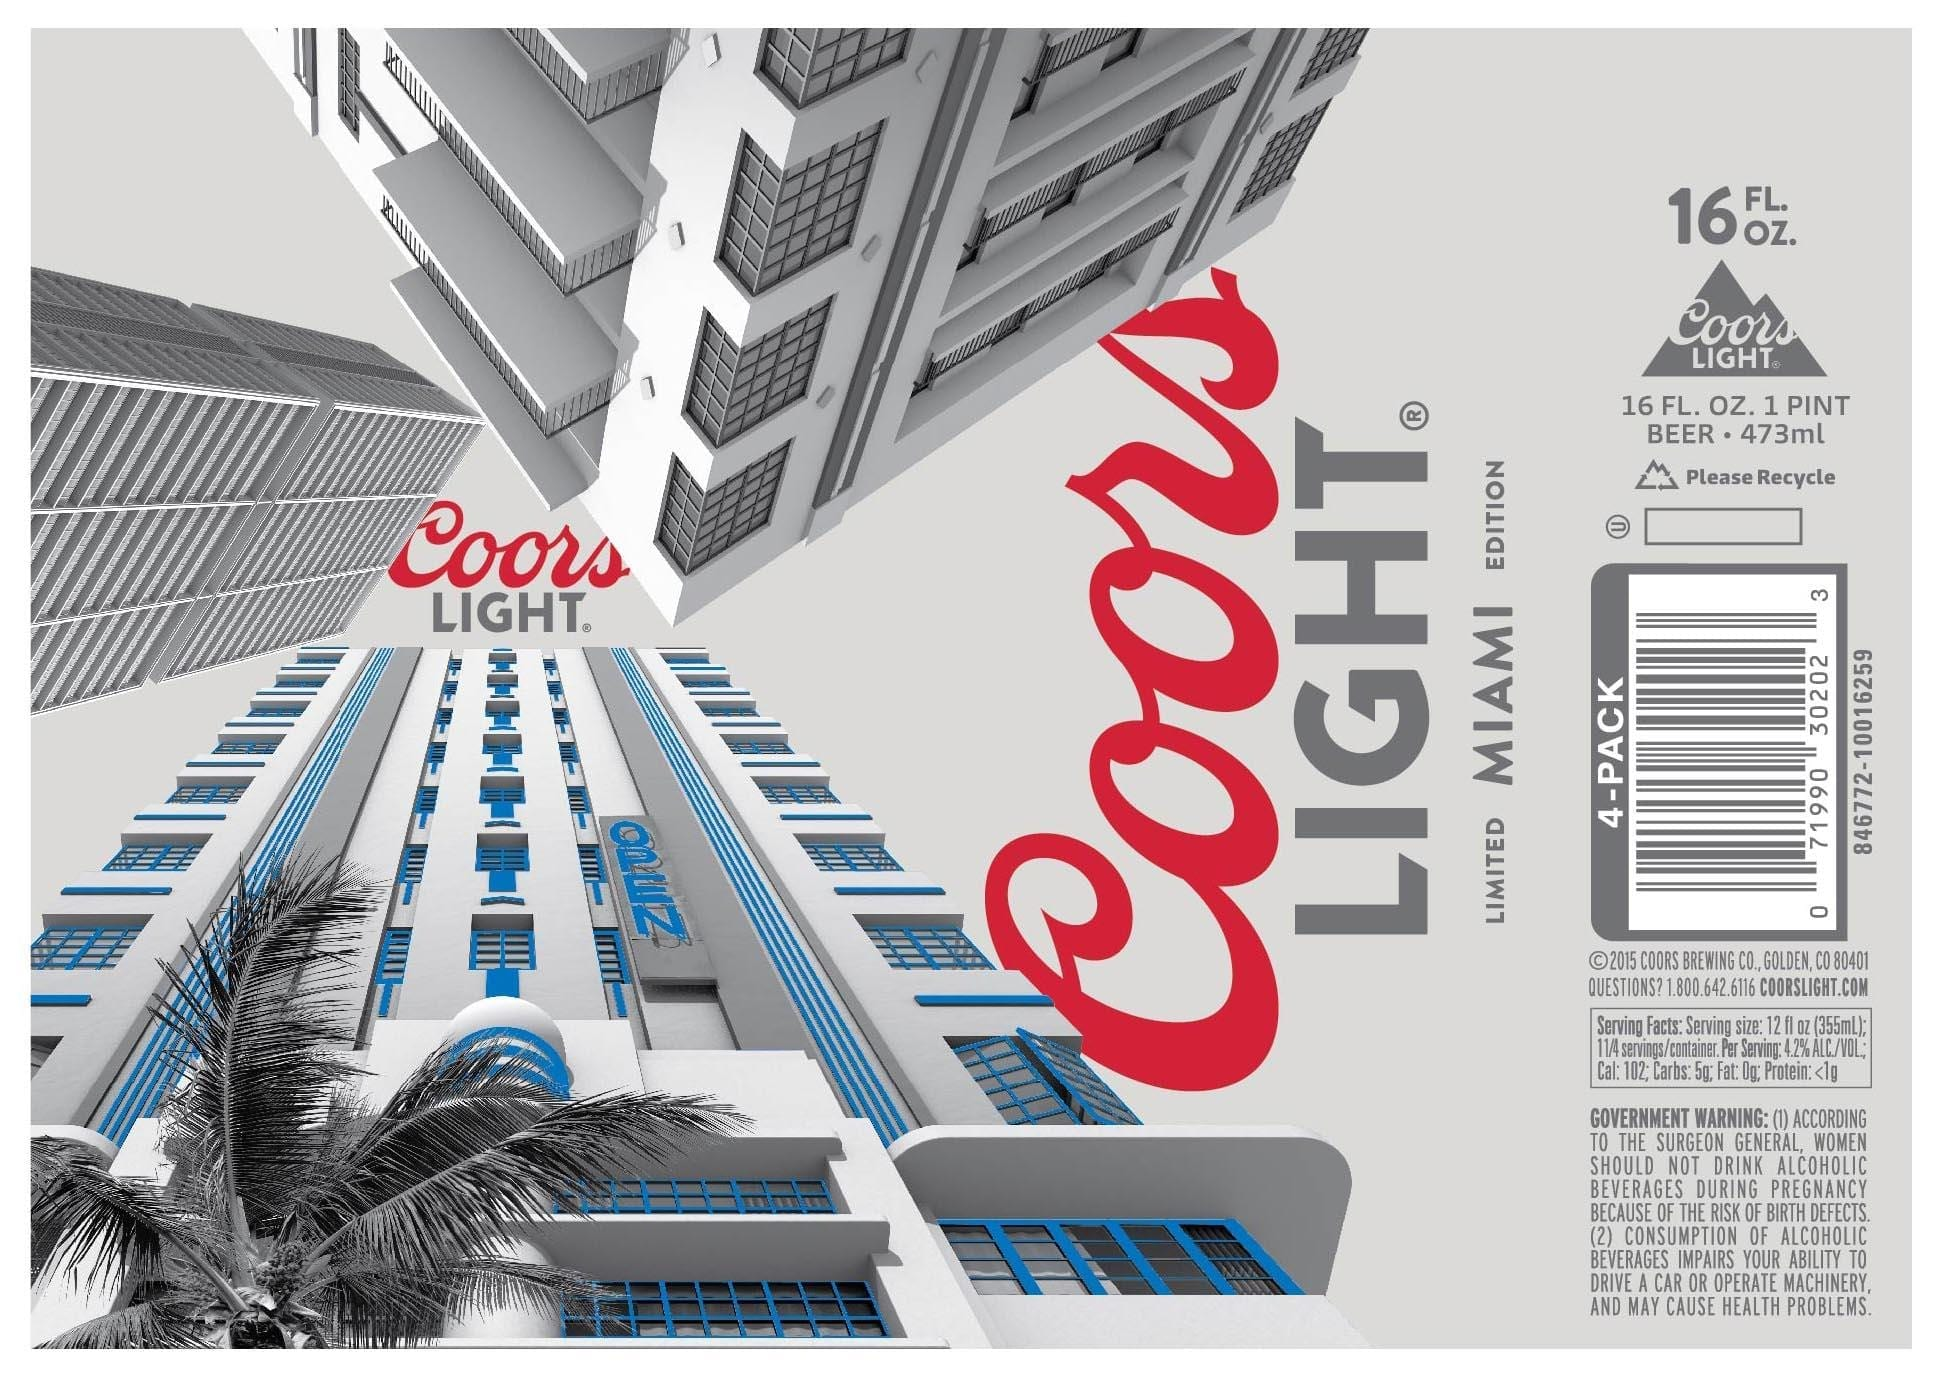 Coors Light Miami